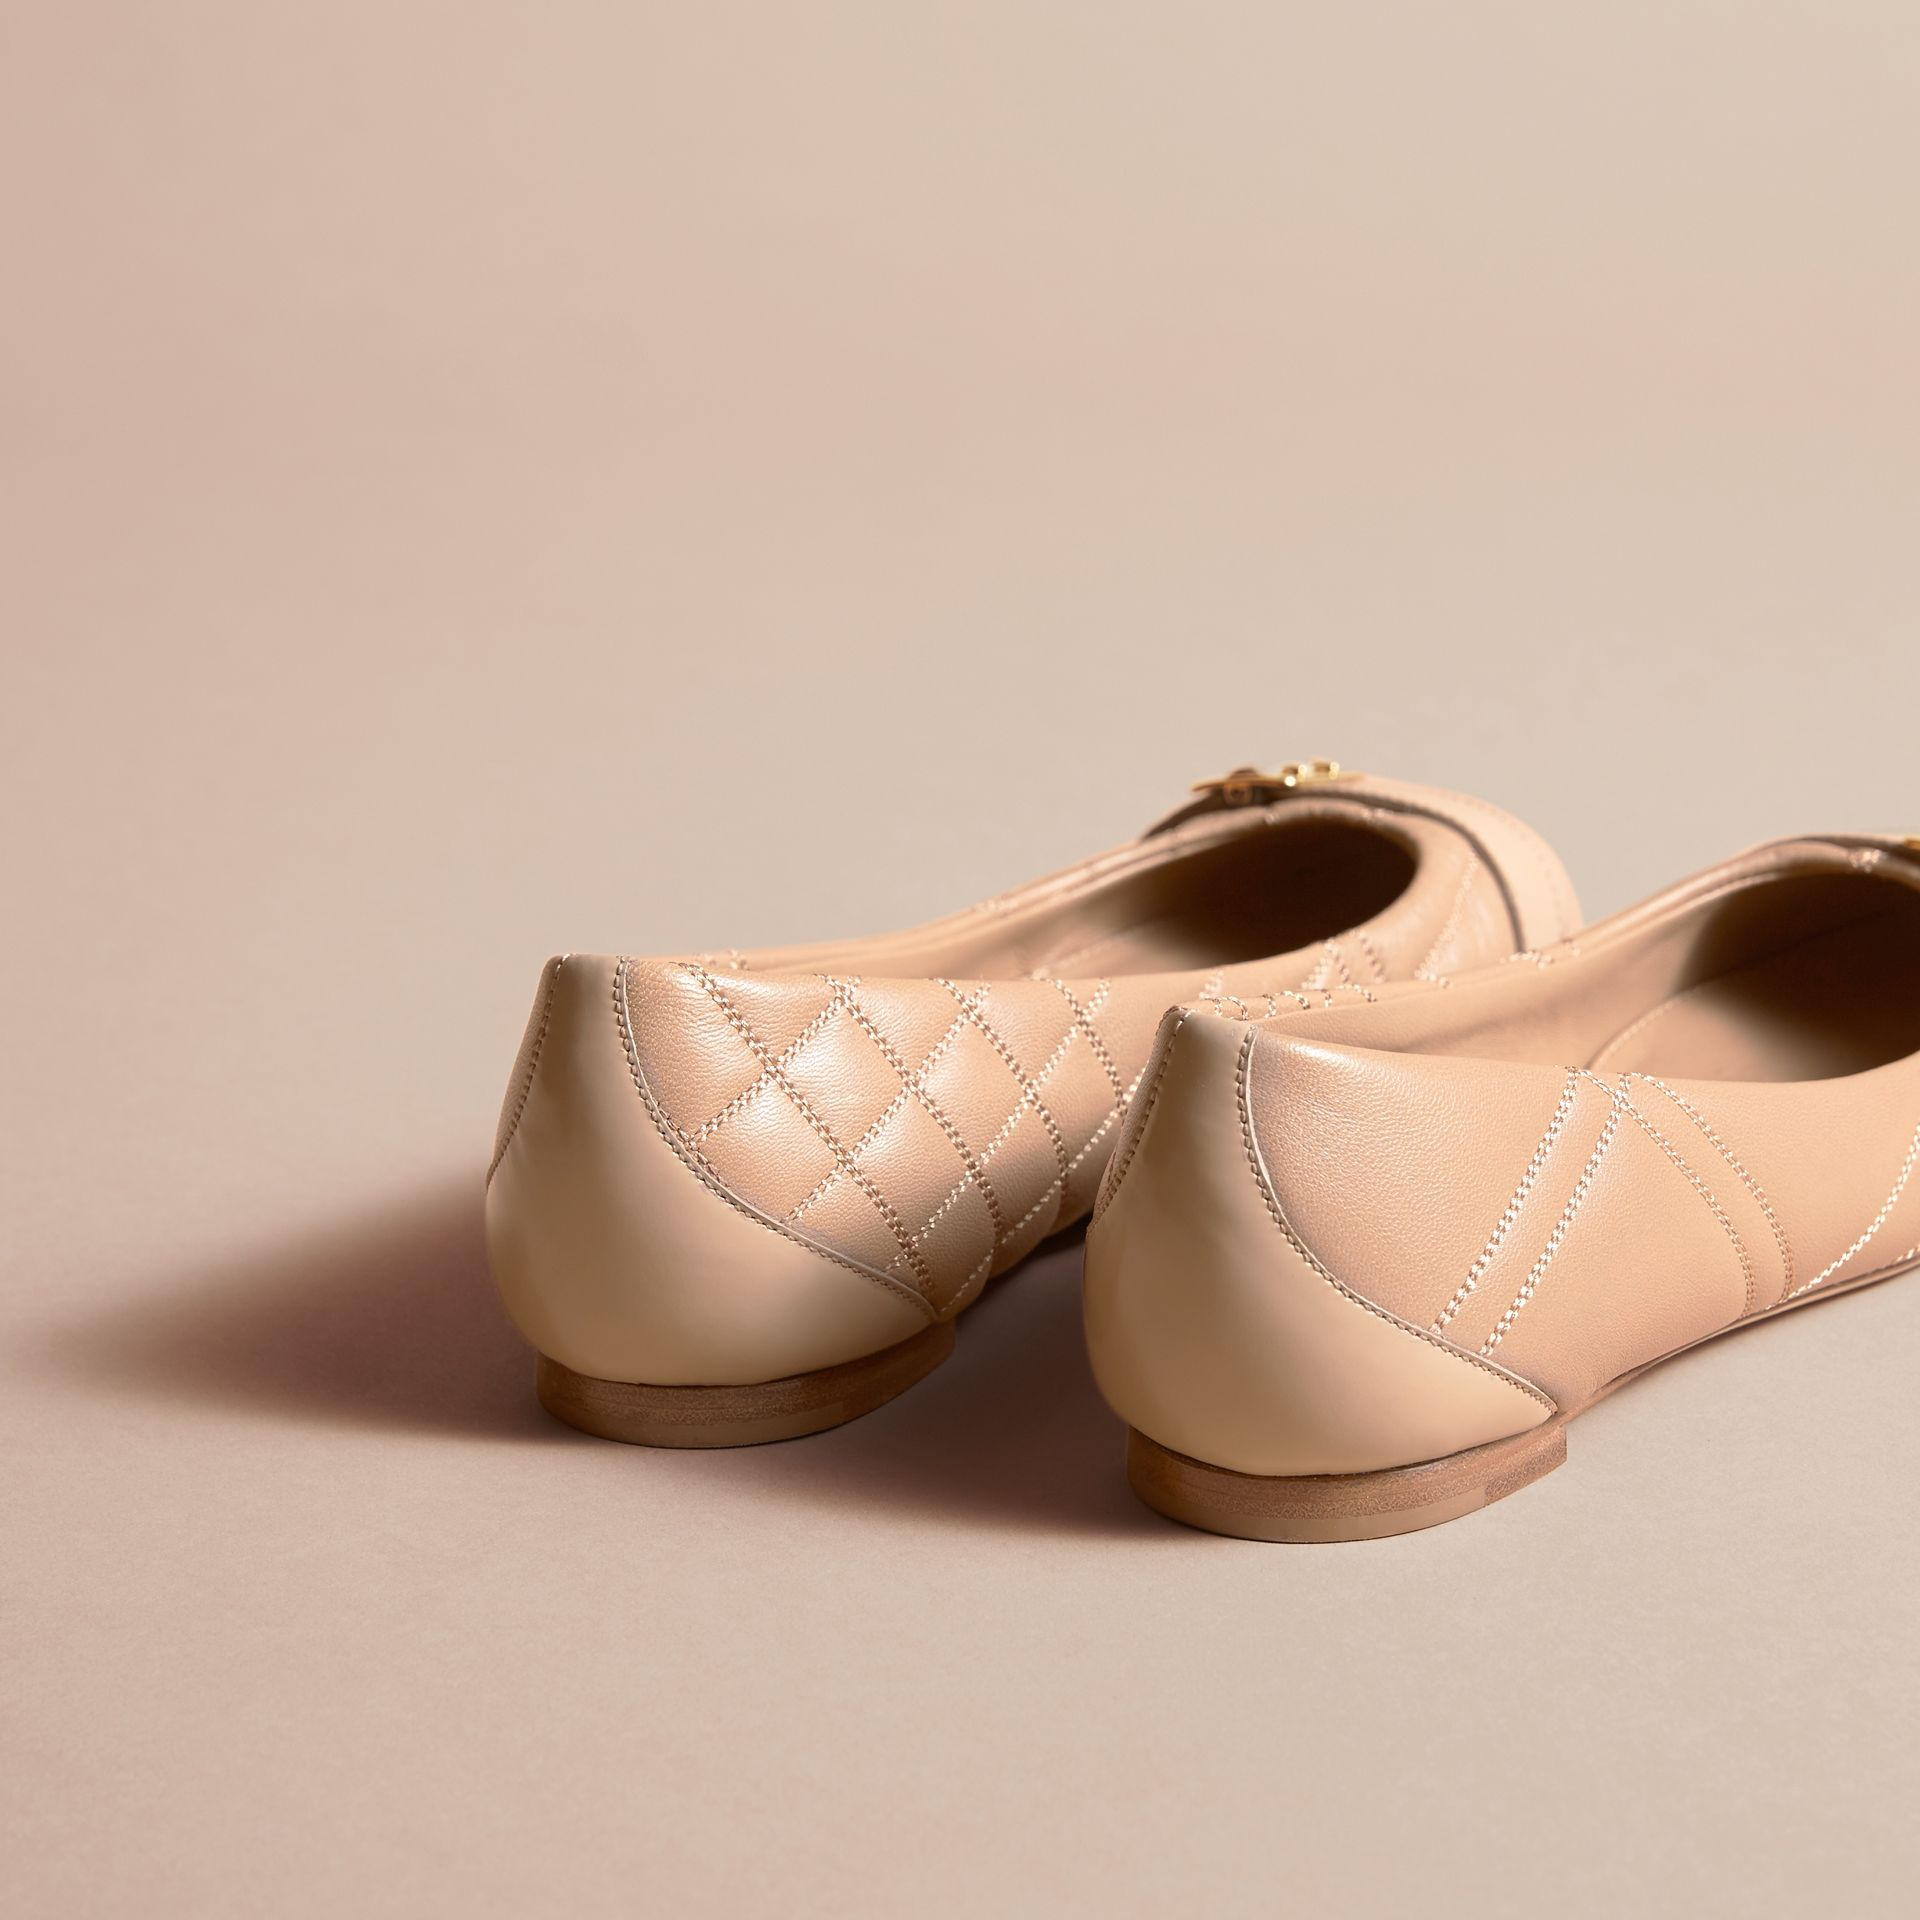 Buckle Detail Quilted Lambskin Leather Ballerinas in Honey - Women | Burberry - gallery image 4